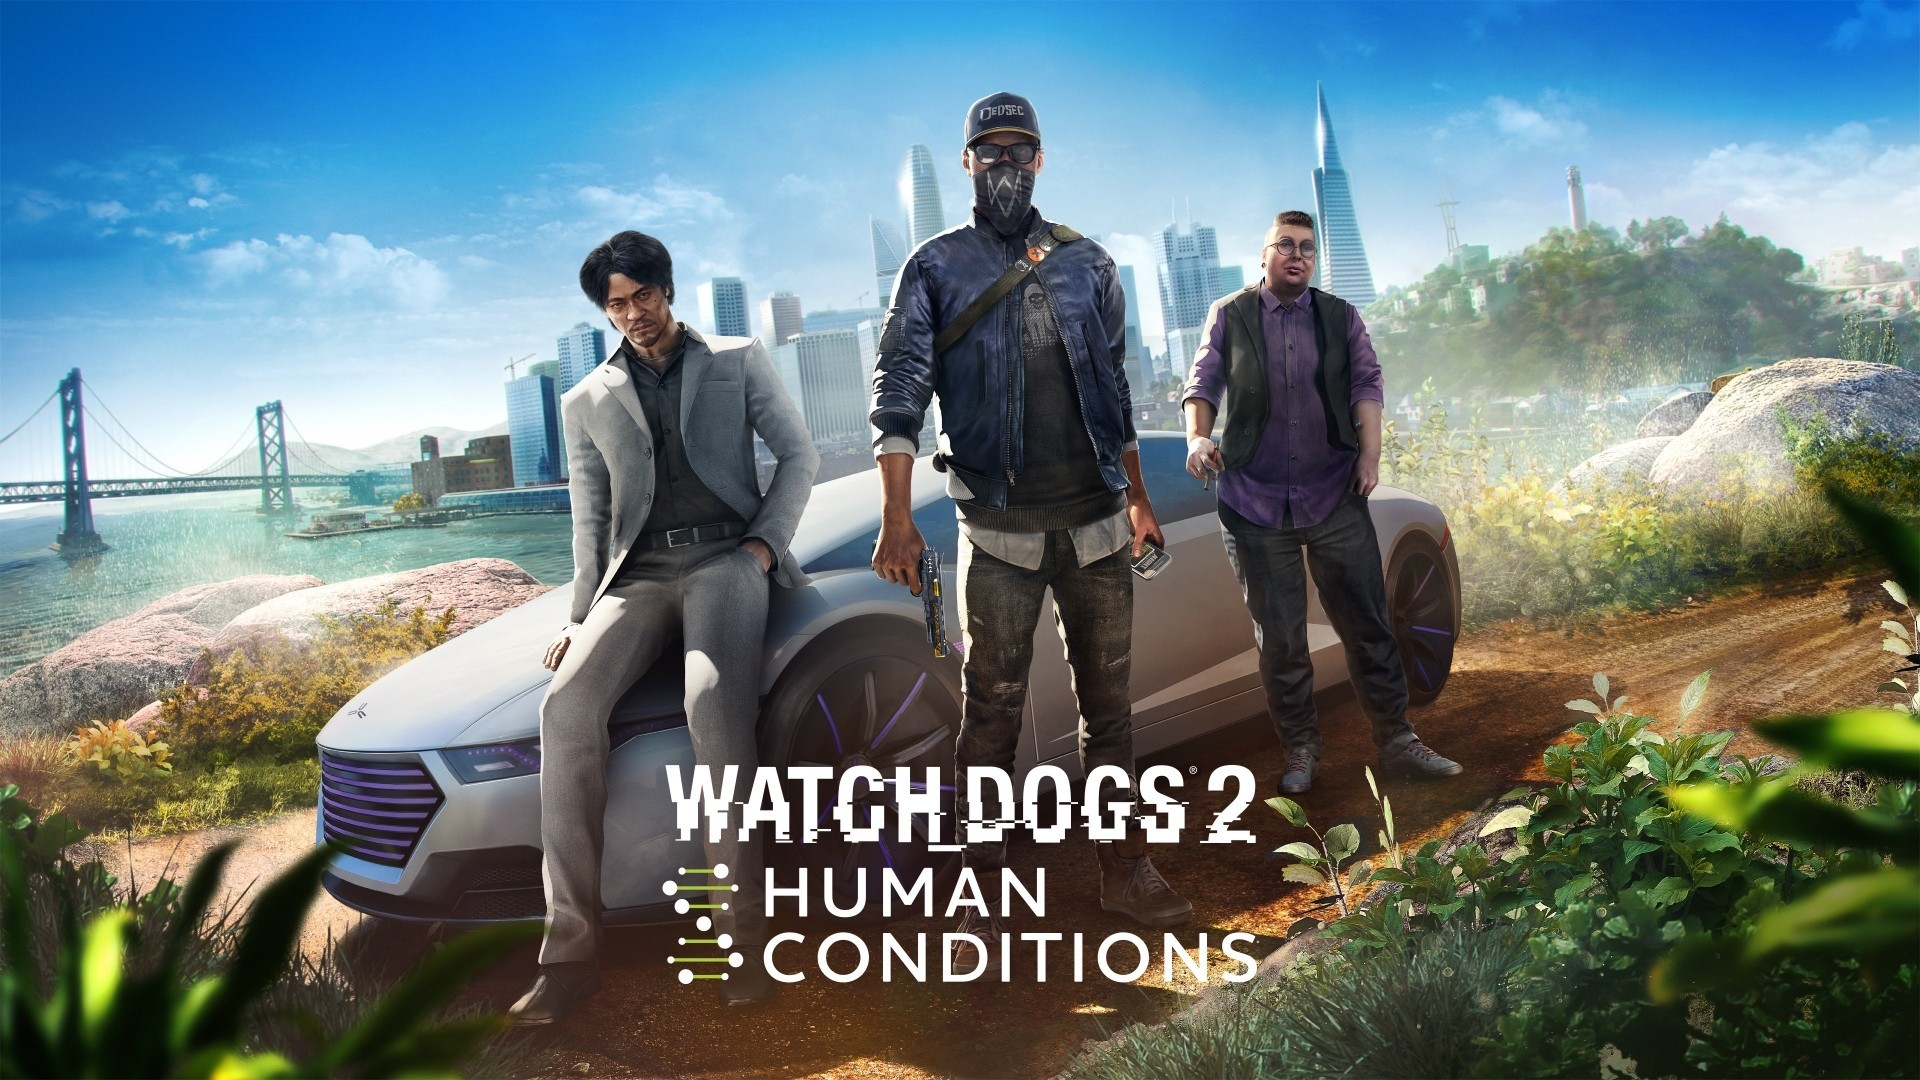 Free Cool Watch Dogs 2 Chrome Extension Hd Wallpaper Theme Tab For Chrome Browser